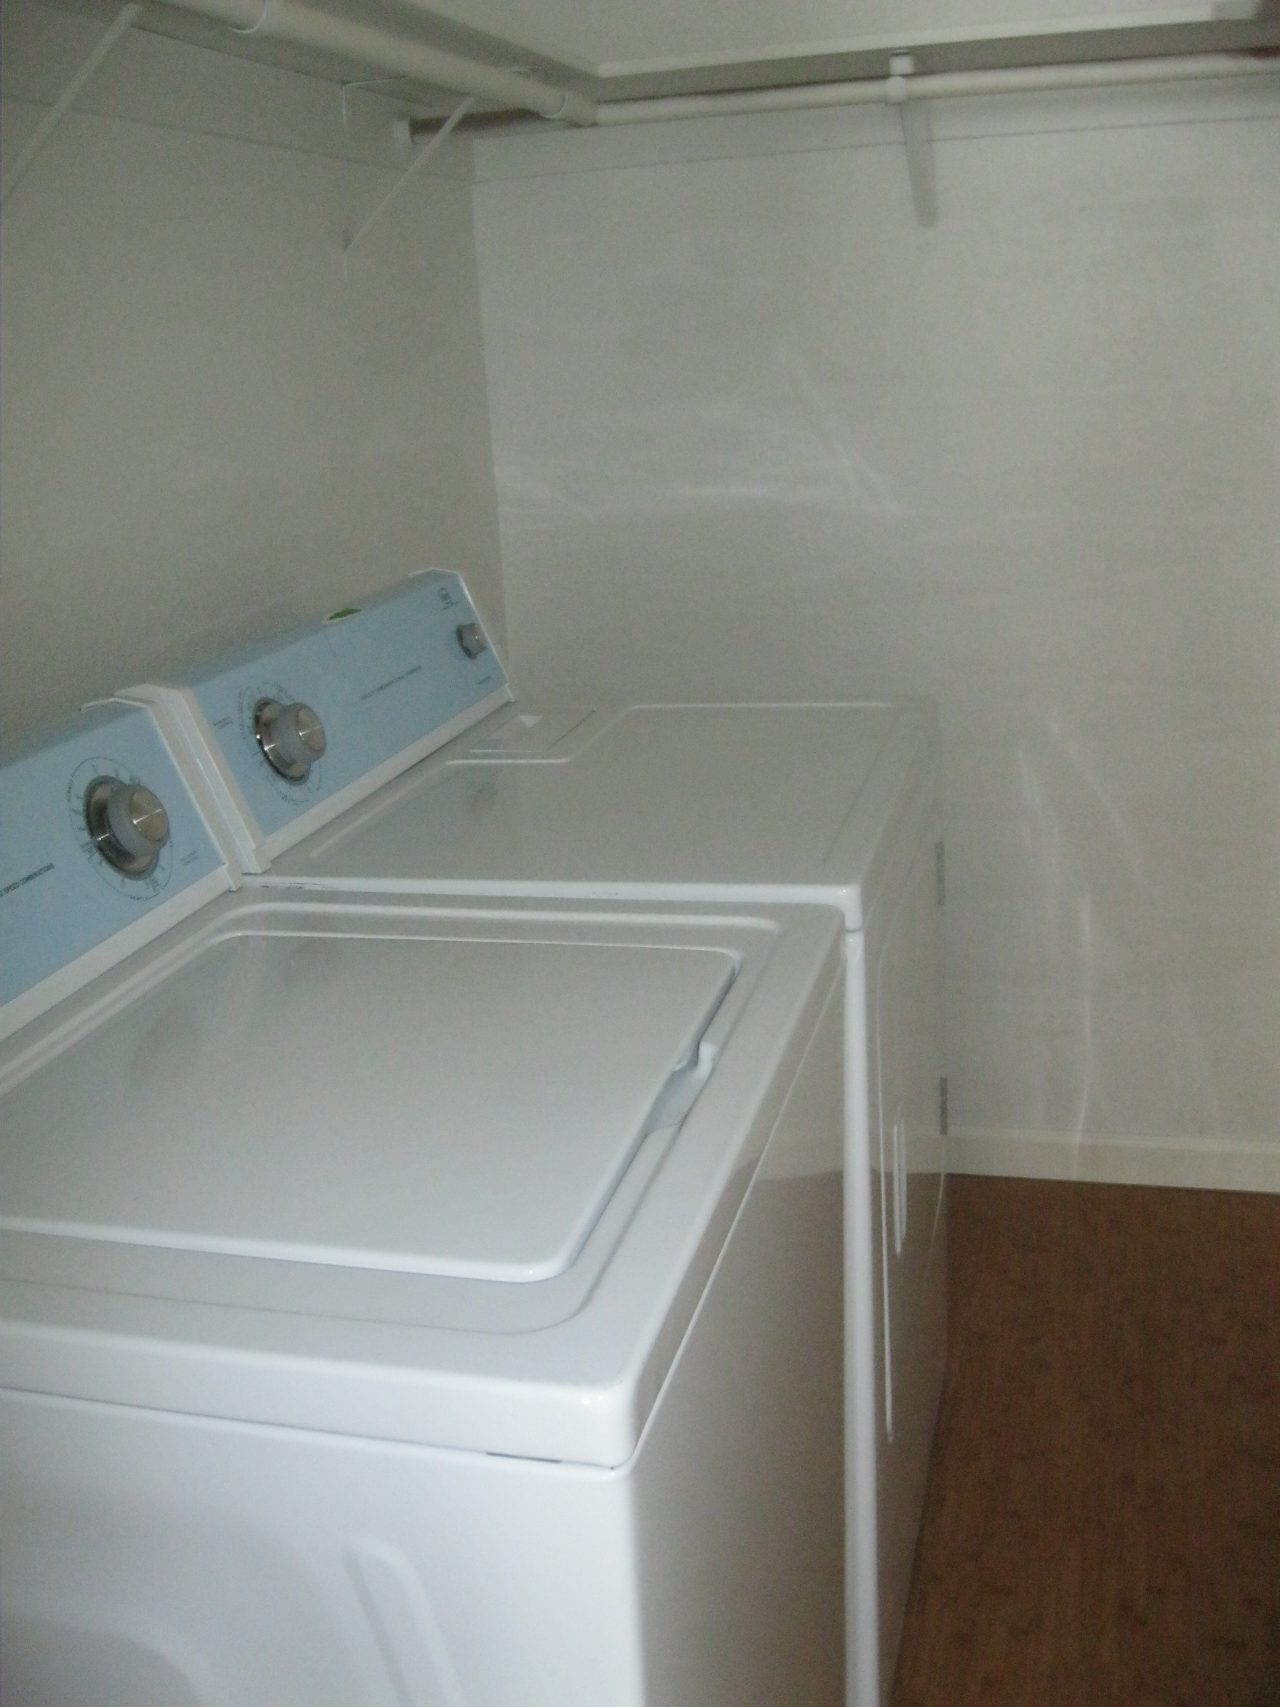 clear-acre-laundry-room-e1485140542169